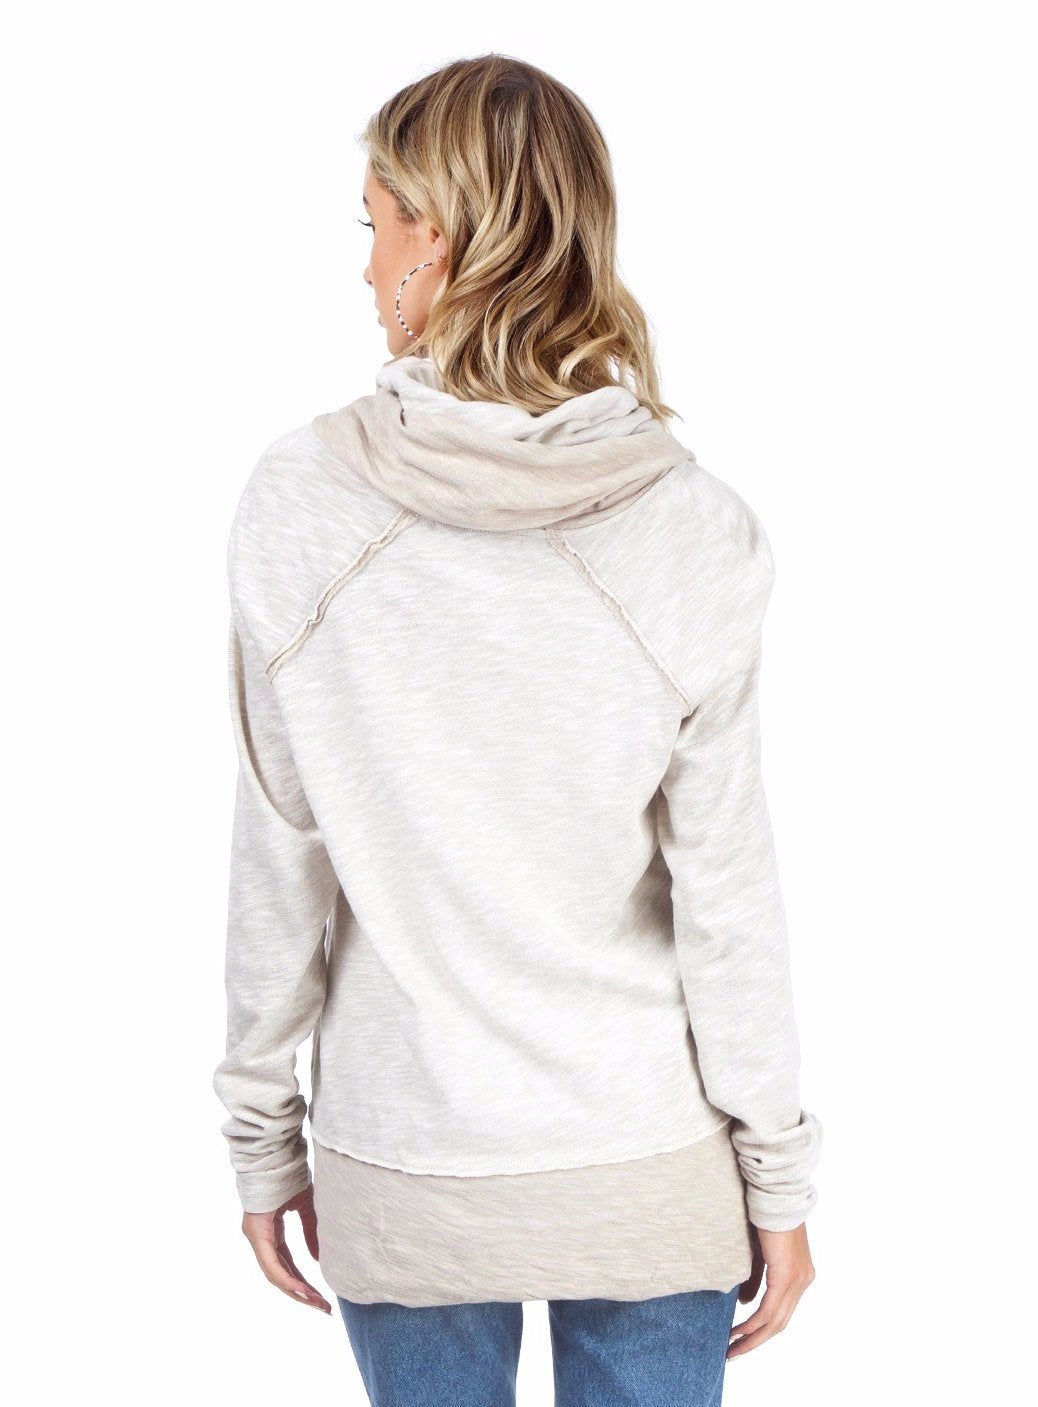 Women wearing a sweater rental from Free People called Beach Cocoon Cowl Neck Pullover